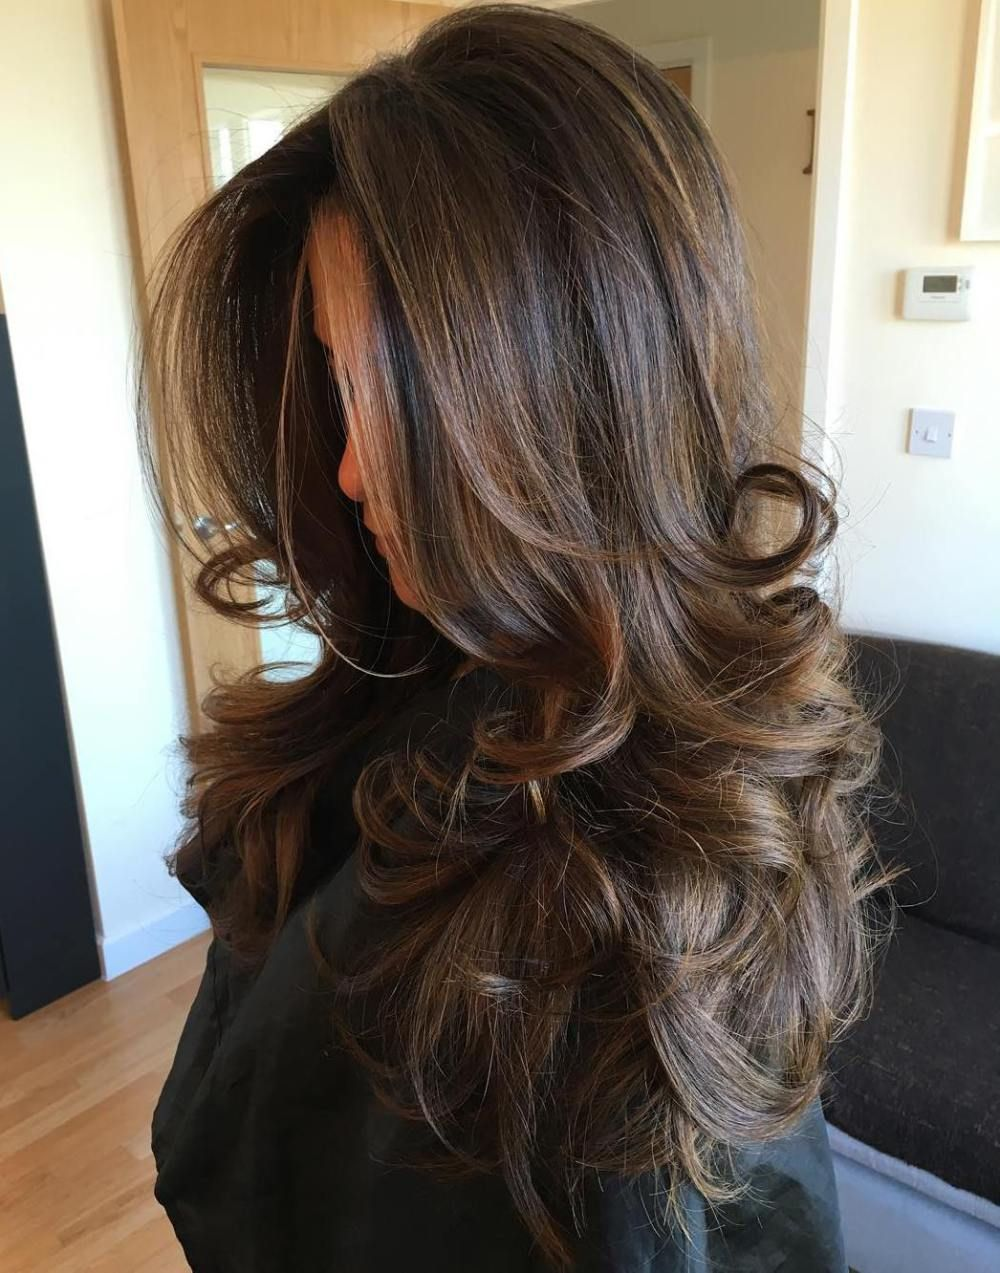 Look - Cut hair prom inspiration video